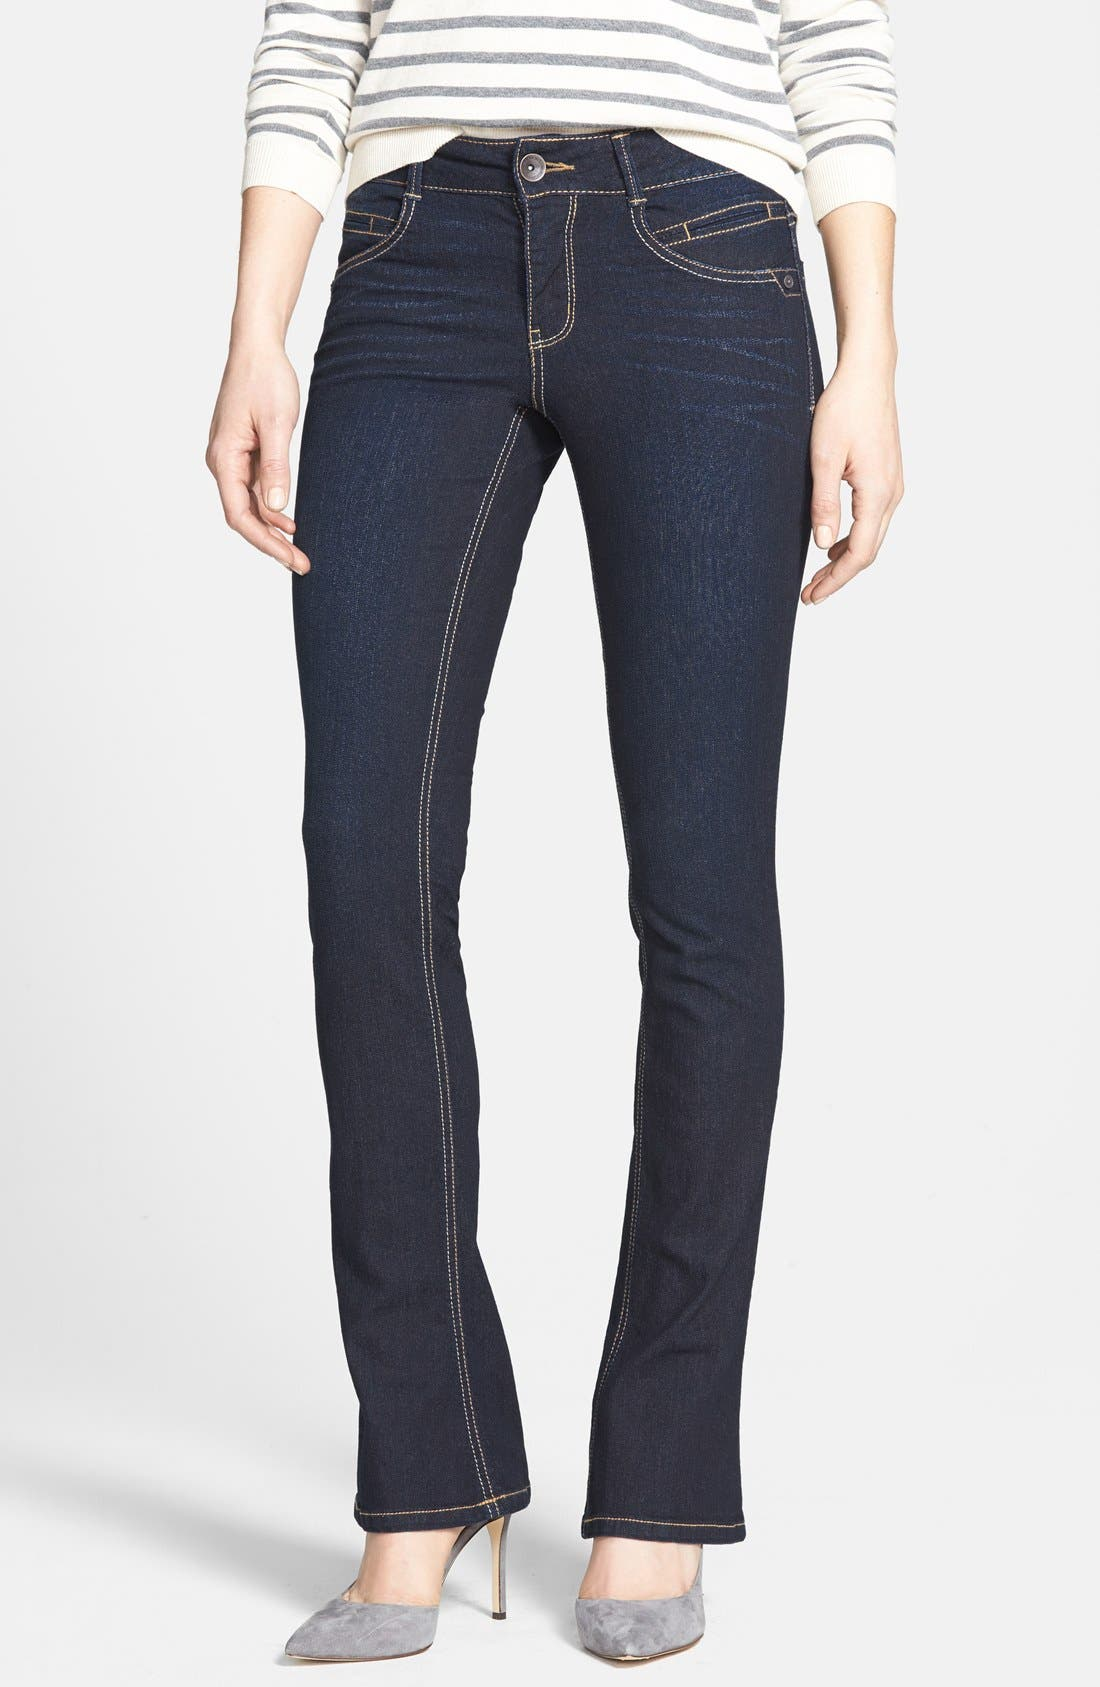 Main Image - Wit & Wisdom 'Itty Bitty' Bootcut Jeans (Blue) (Nordstrom Exclusive)